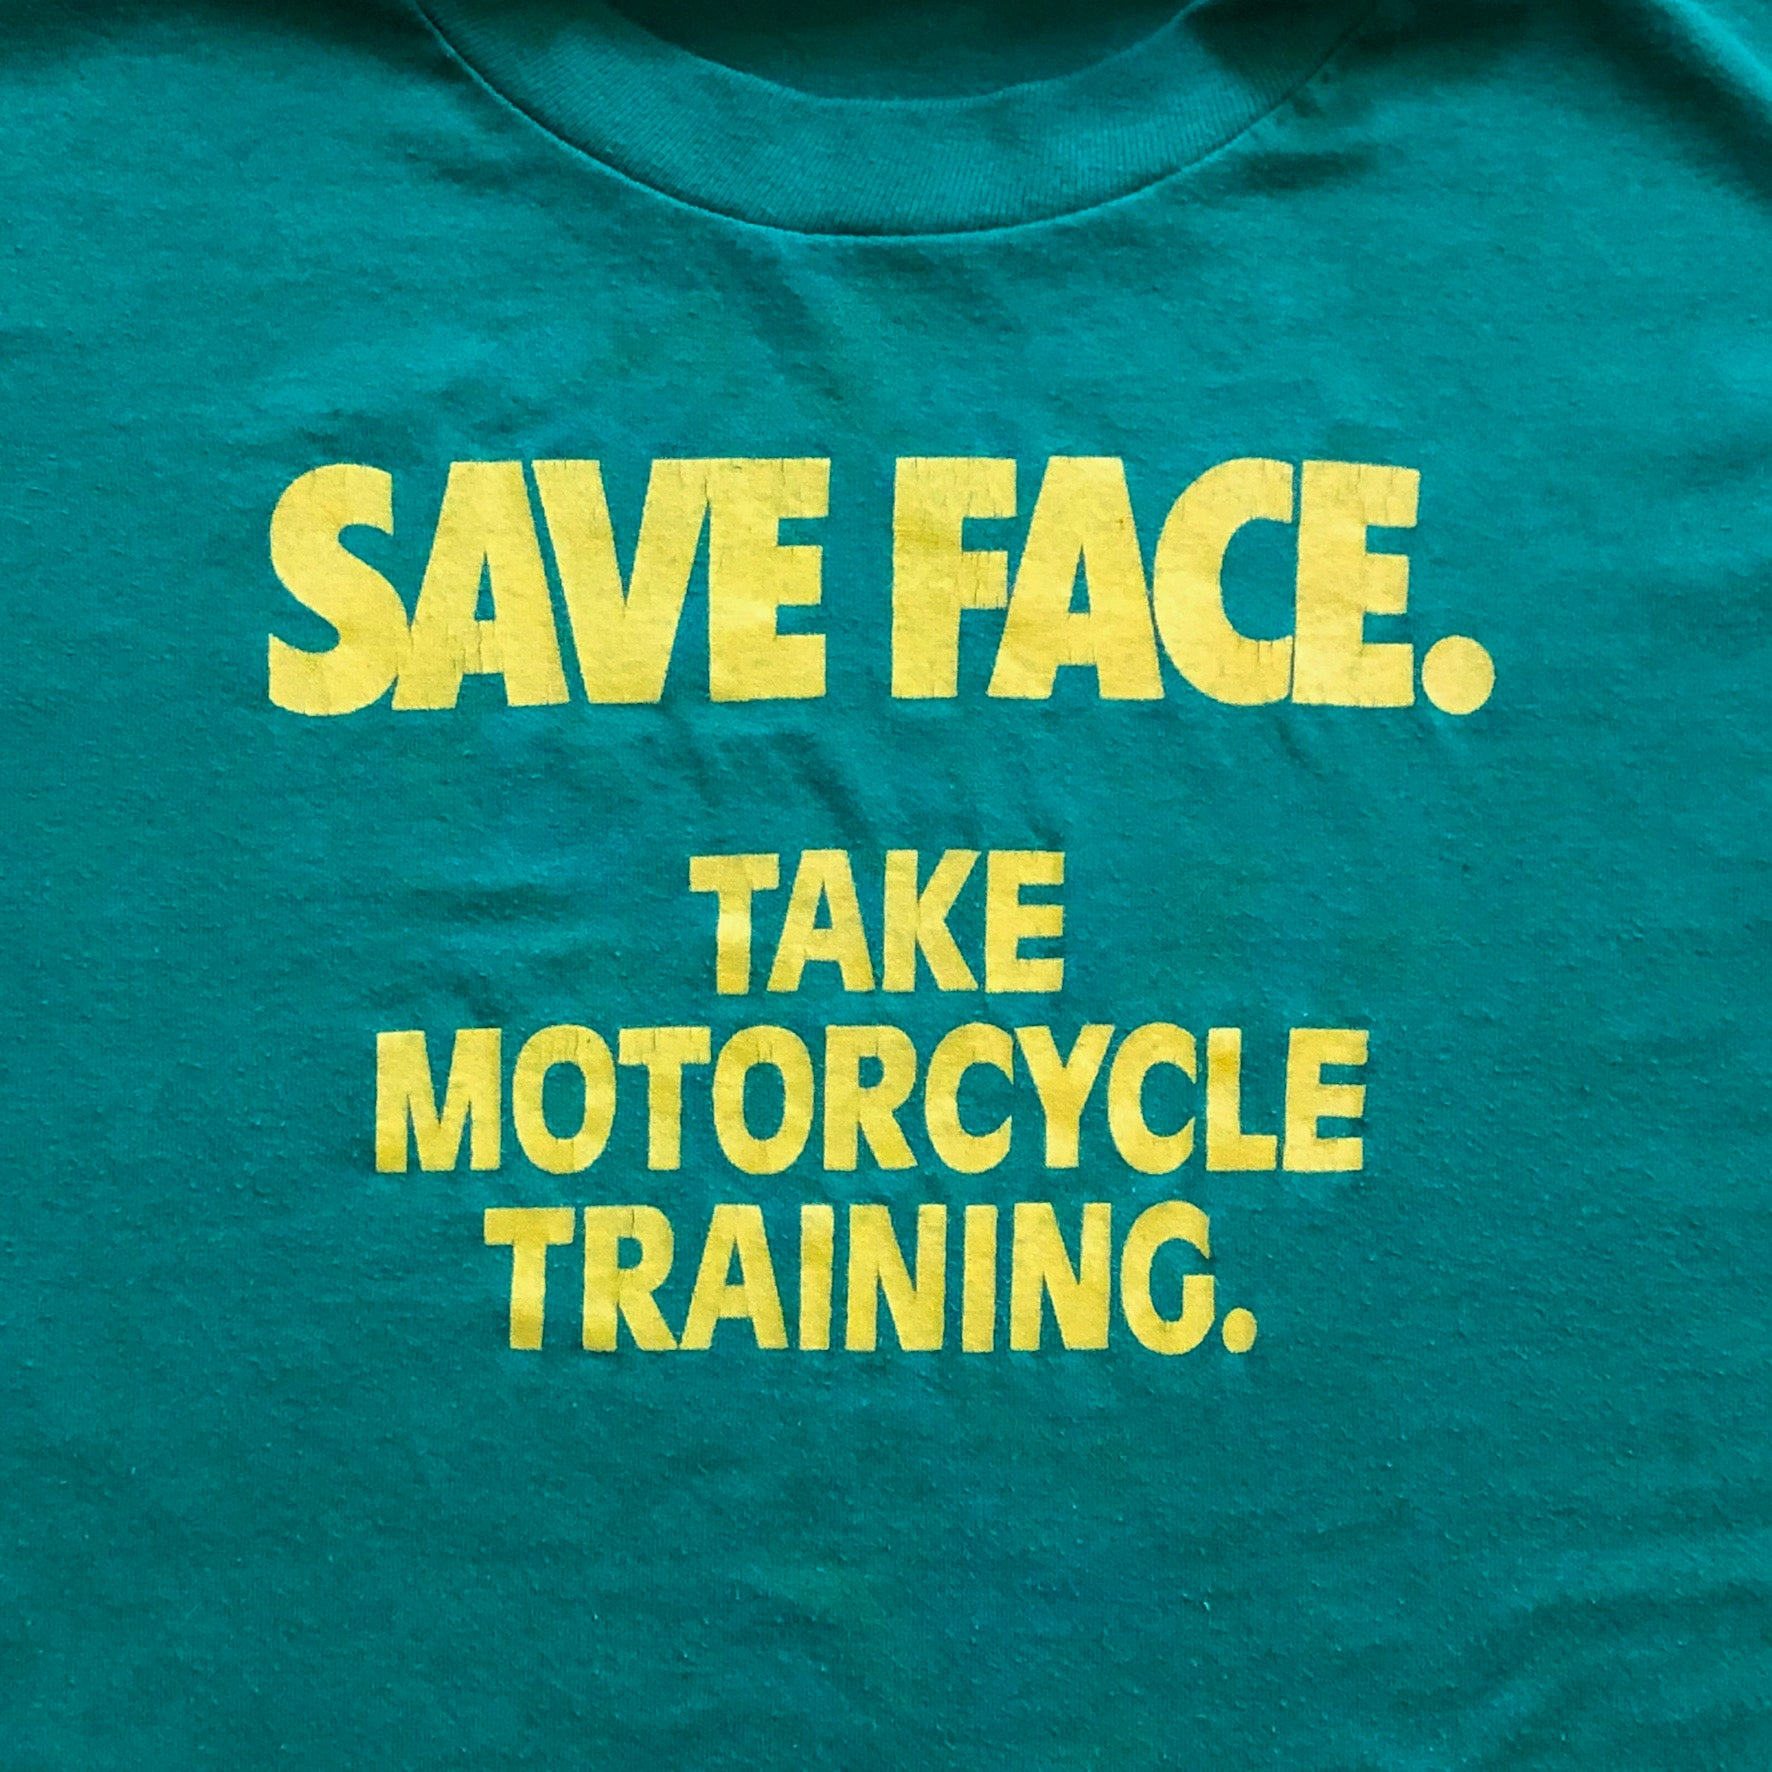 Vintage Motorcycle Safety Training T Shirt from 1980s - XL - Save Face - John Deere Colors - Green Yellow - Jerzees Tag